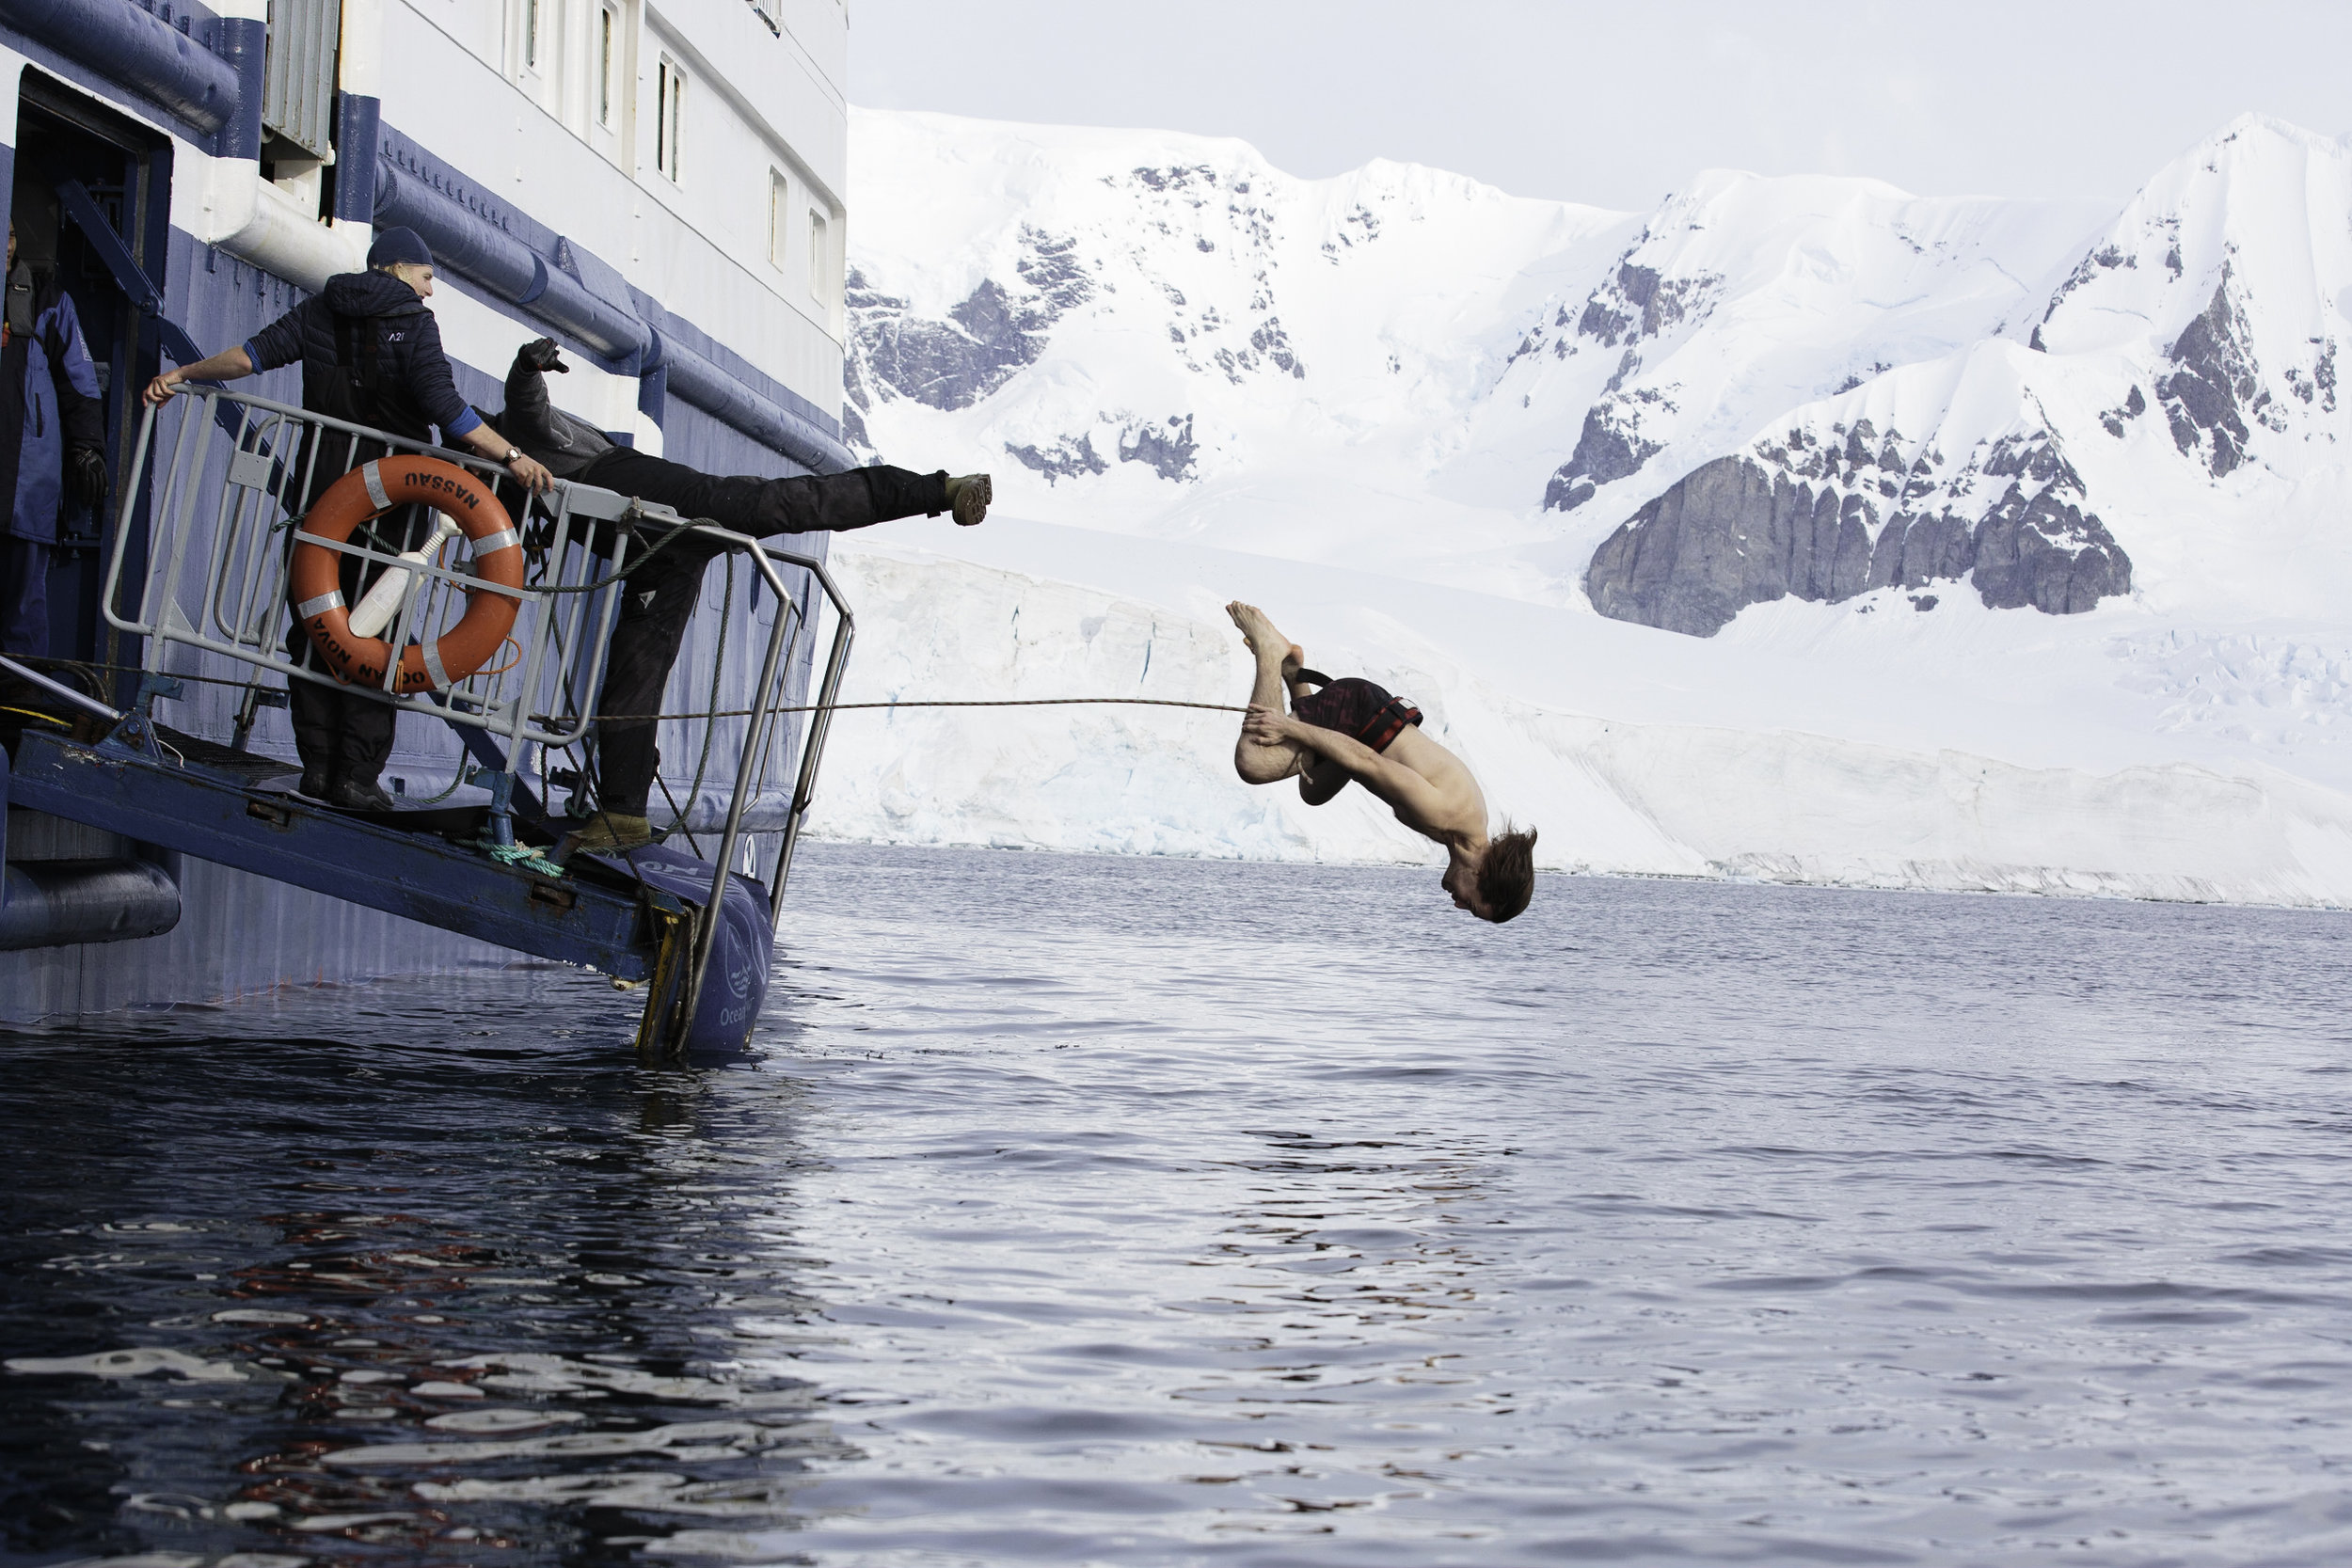 A passenger takes the plunge.